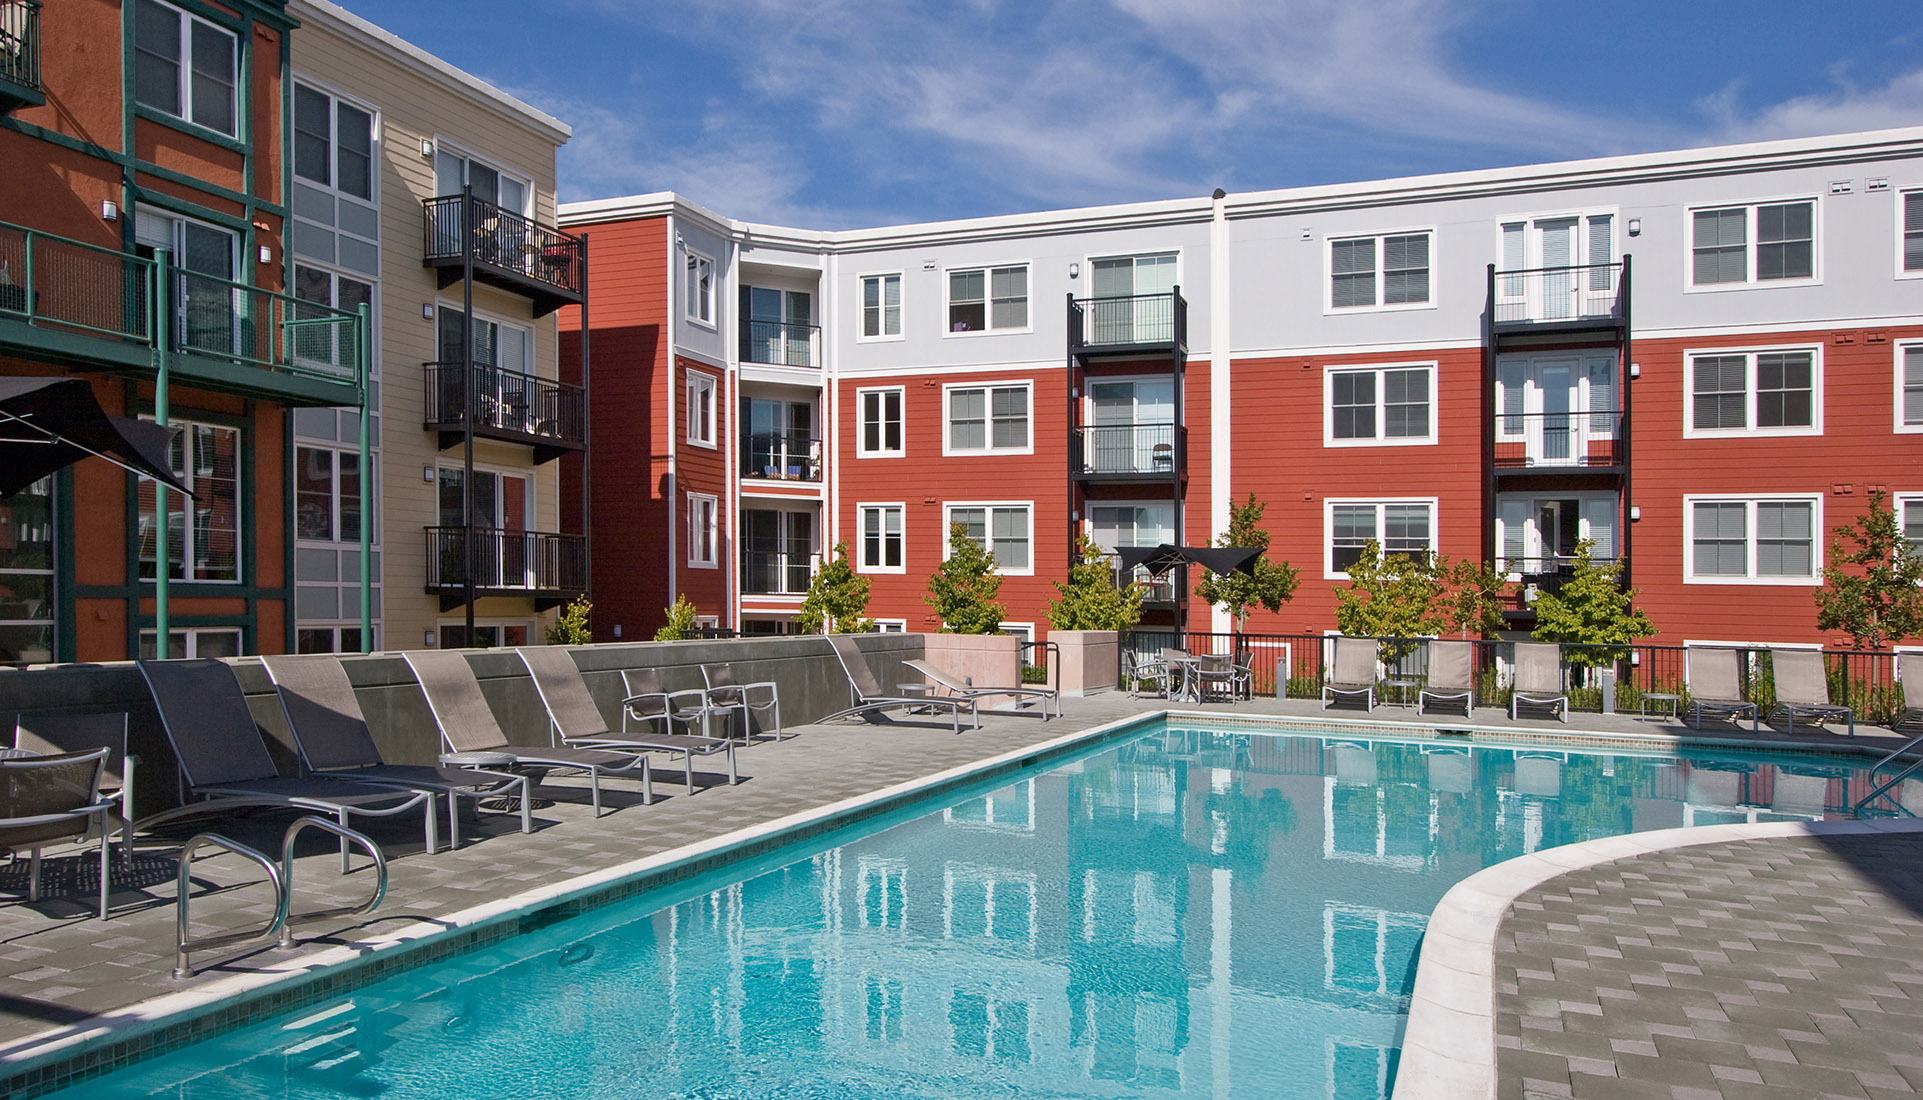 AVE Emeryville court with pool view